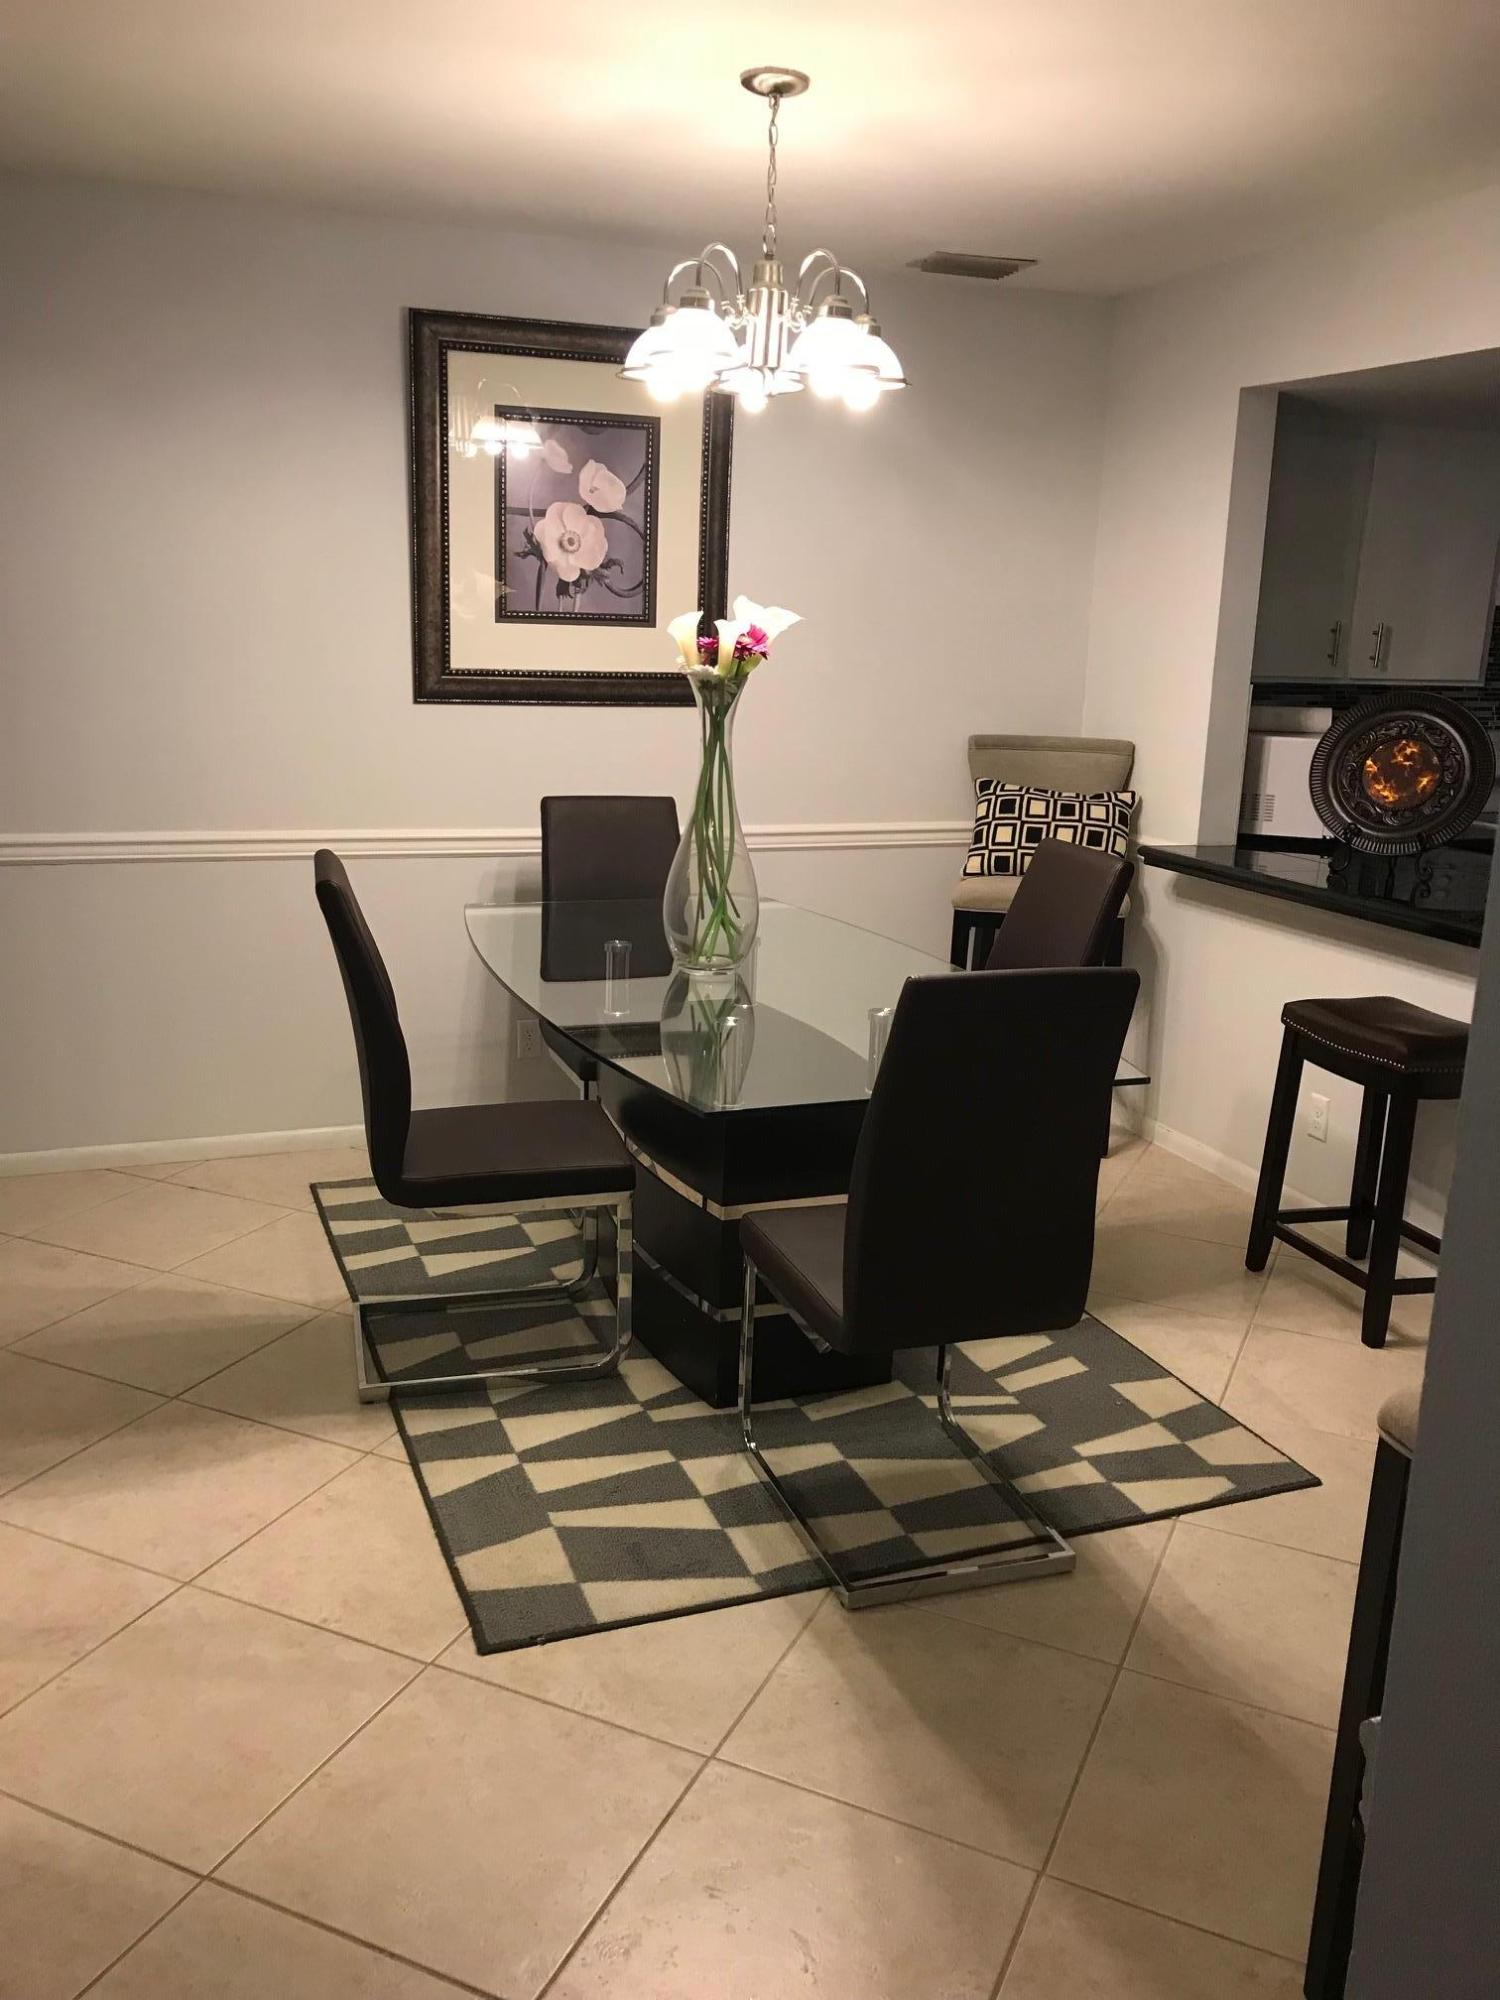 1569 Shaker Circle, Wellington, Florida 33414, 2 Bedrooms Bedrooms, ,2.1 BathroomsBathrooms,Townhouse,For Rent,Shaker,RX-10464313